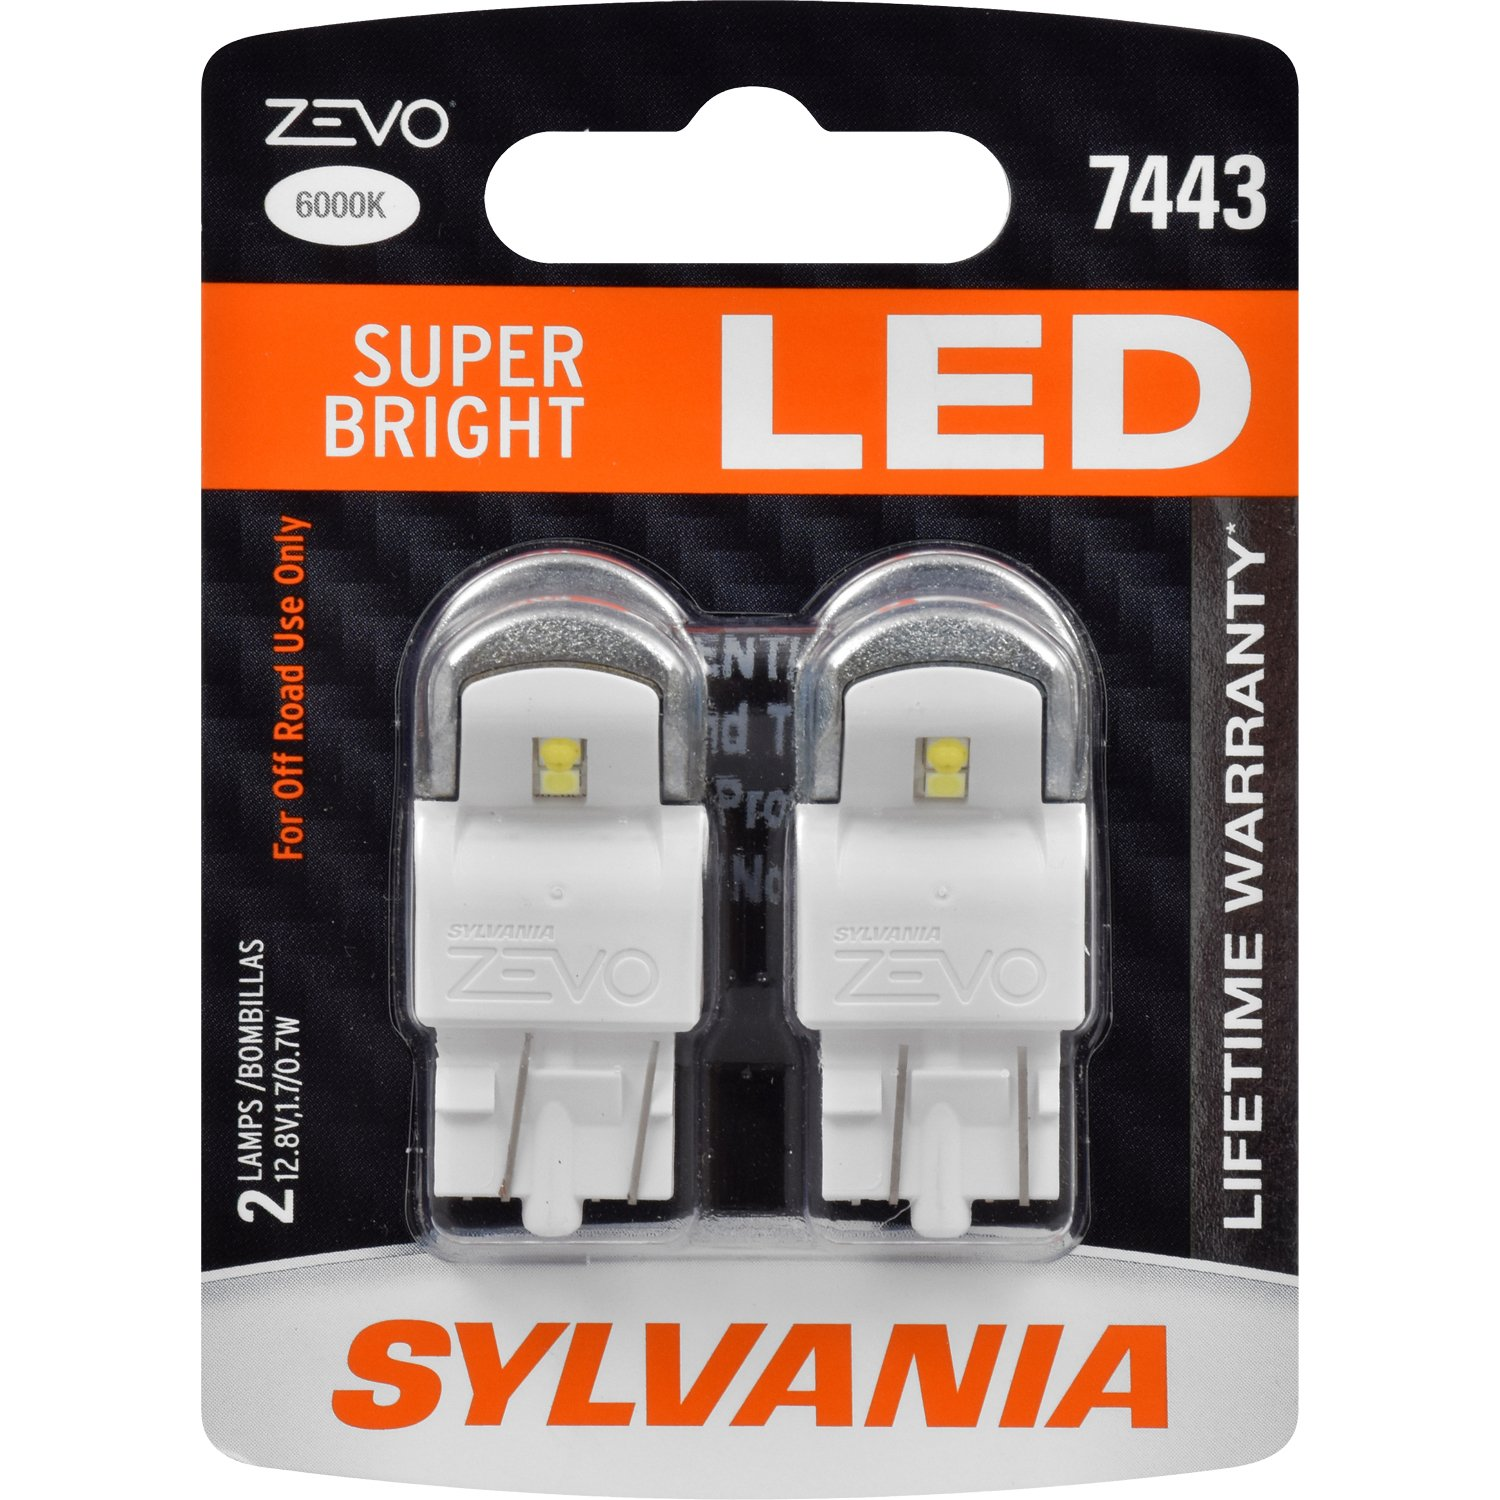 7443 T20 ZEVO LED Amber Bulb Contains 2 Bulbs Ideal for Park and Turn Signals SYLVANIA Bright LED Bulb